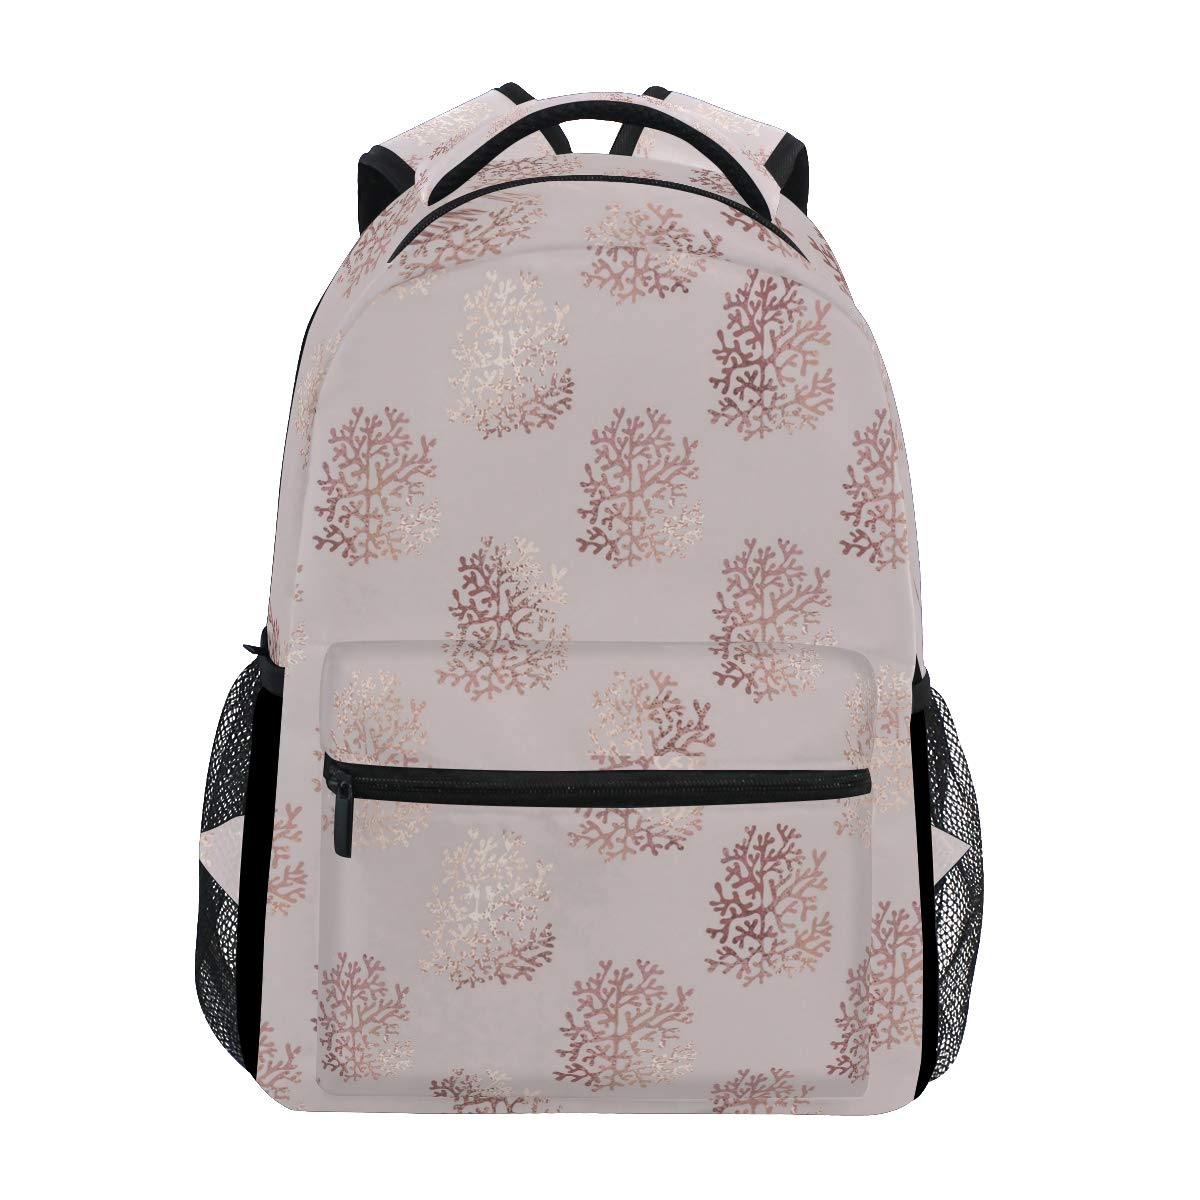 54142325832 Amazon.com  Large Travel Outdoor Sports Laptop Backpack Water Resistant for  Women   Men College School Rose Gold Beautiful Snowflake  Computers   ...